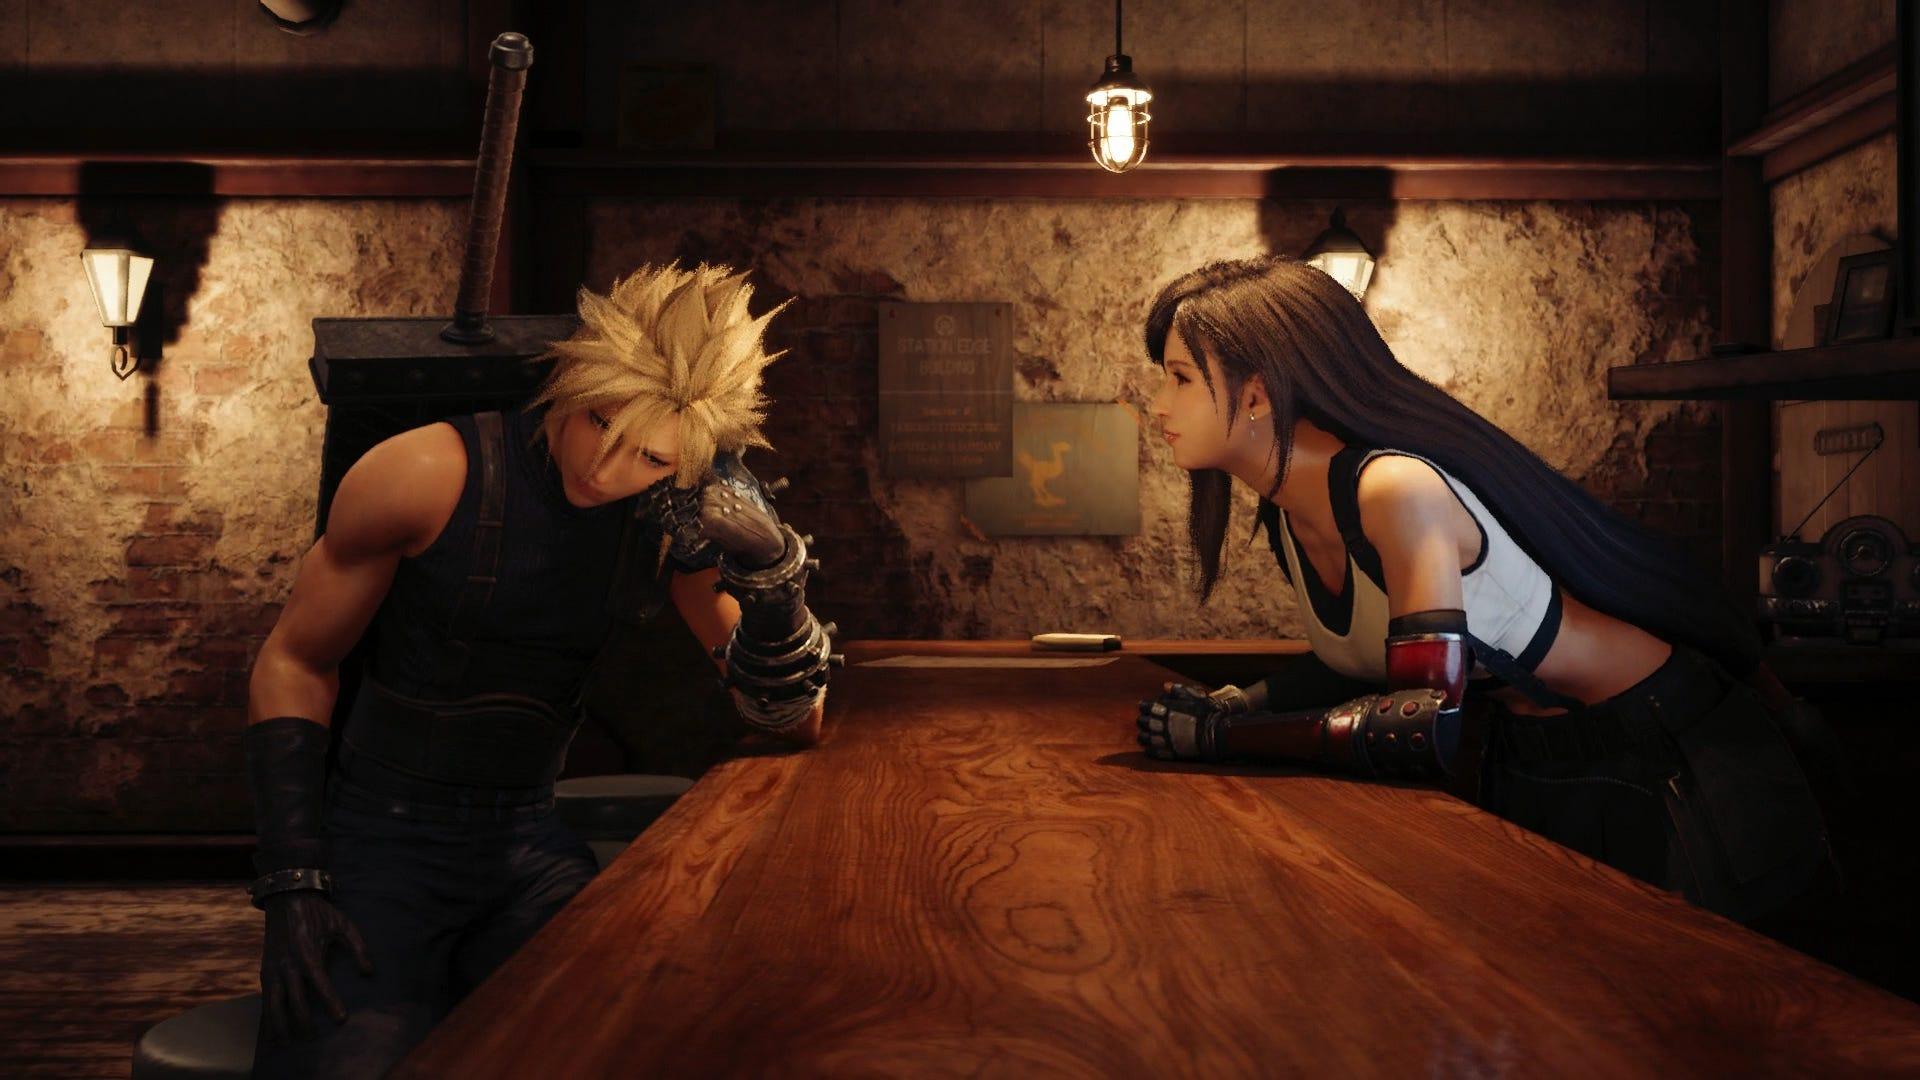 Review Final Fantasy Vii Remake Summons Back A Timeless Classic Technobubble